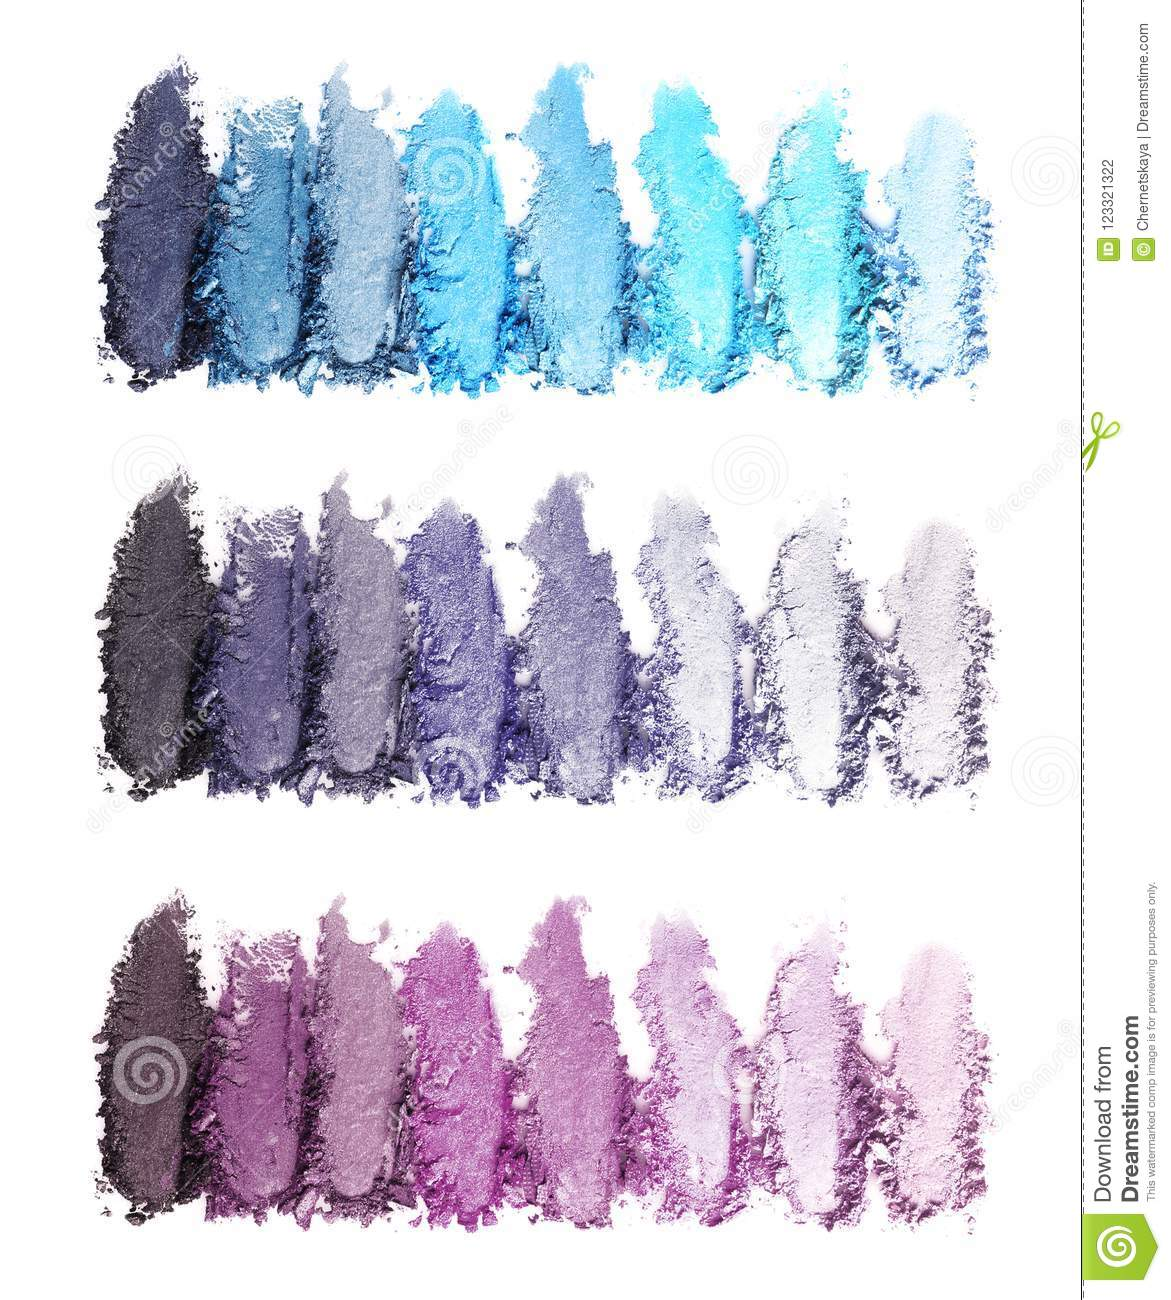 Crushed makeup products on white background